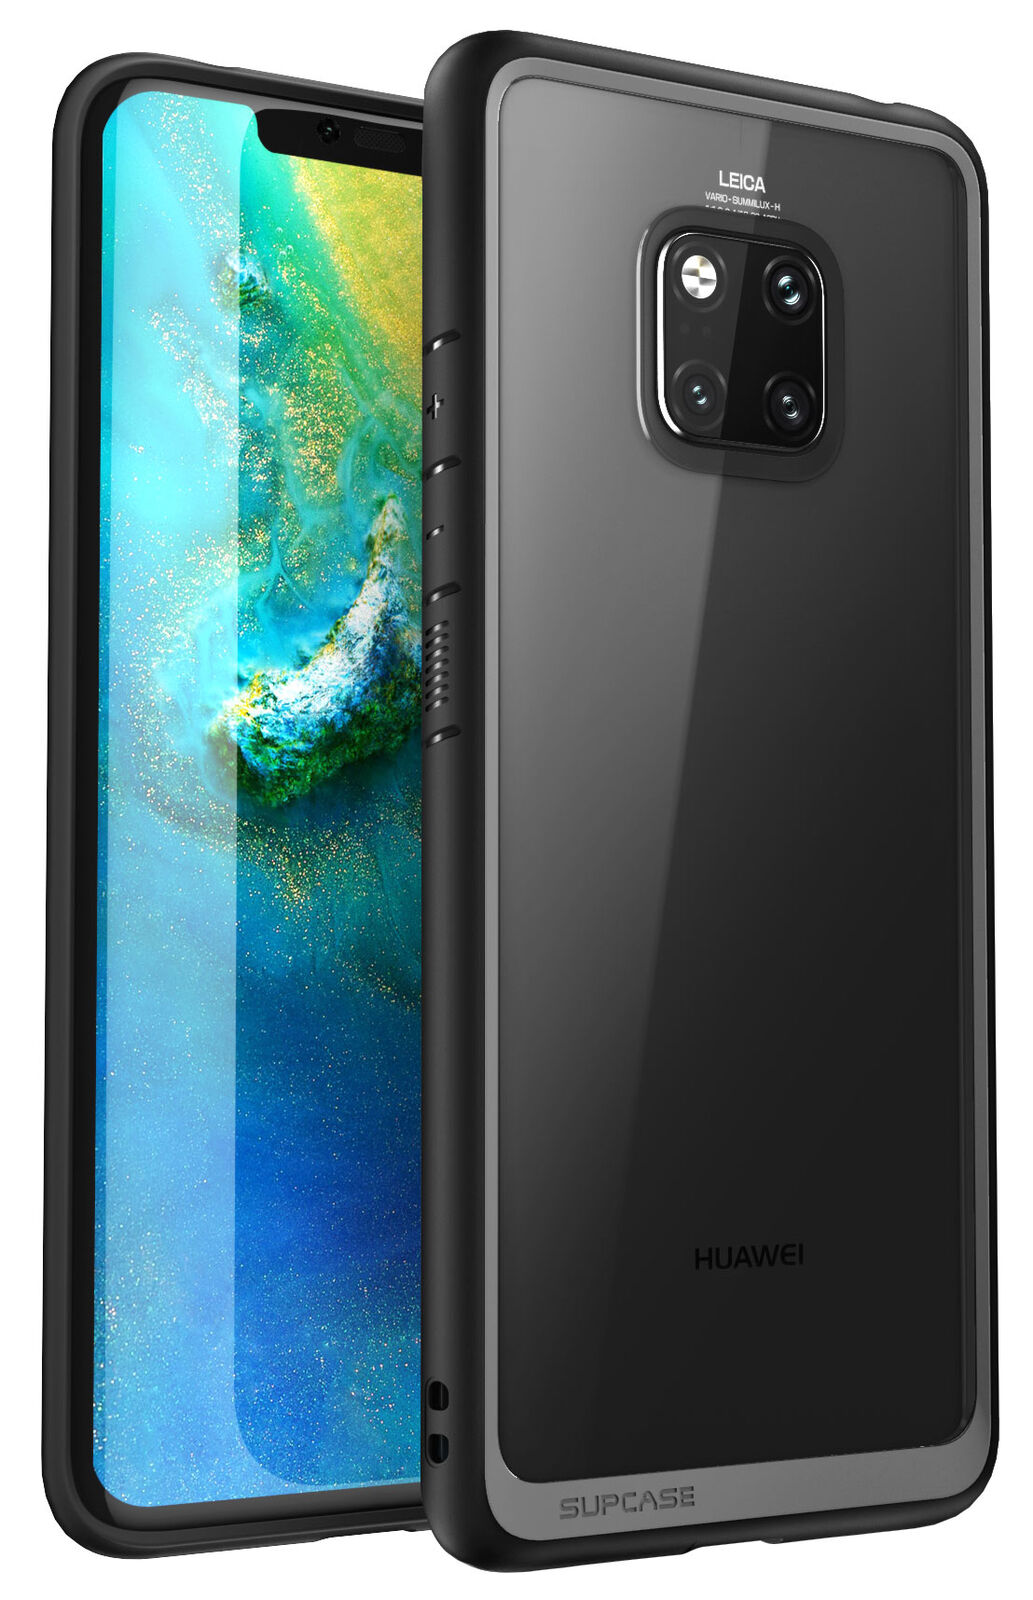 SUPcoque Huawei Mate 20 Pro coque